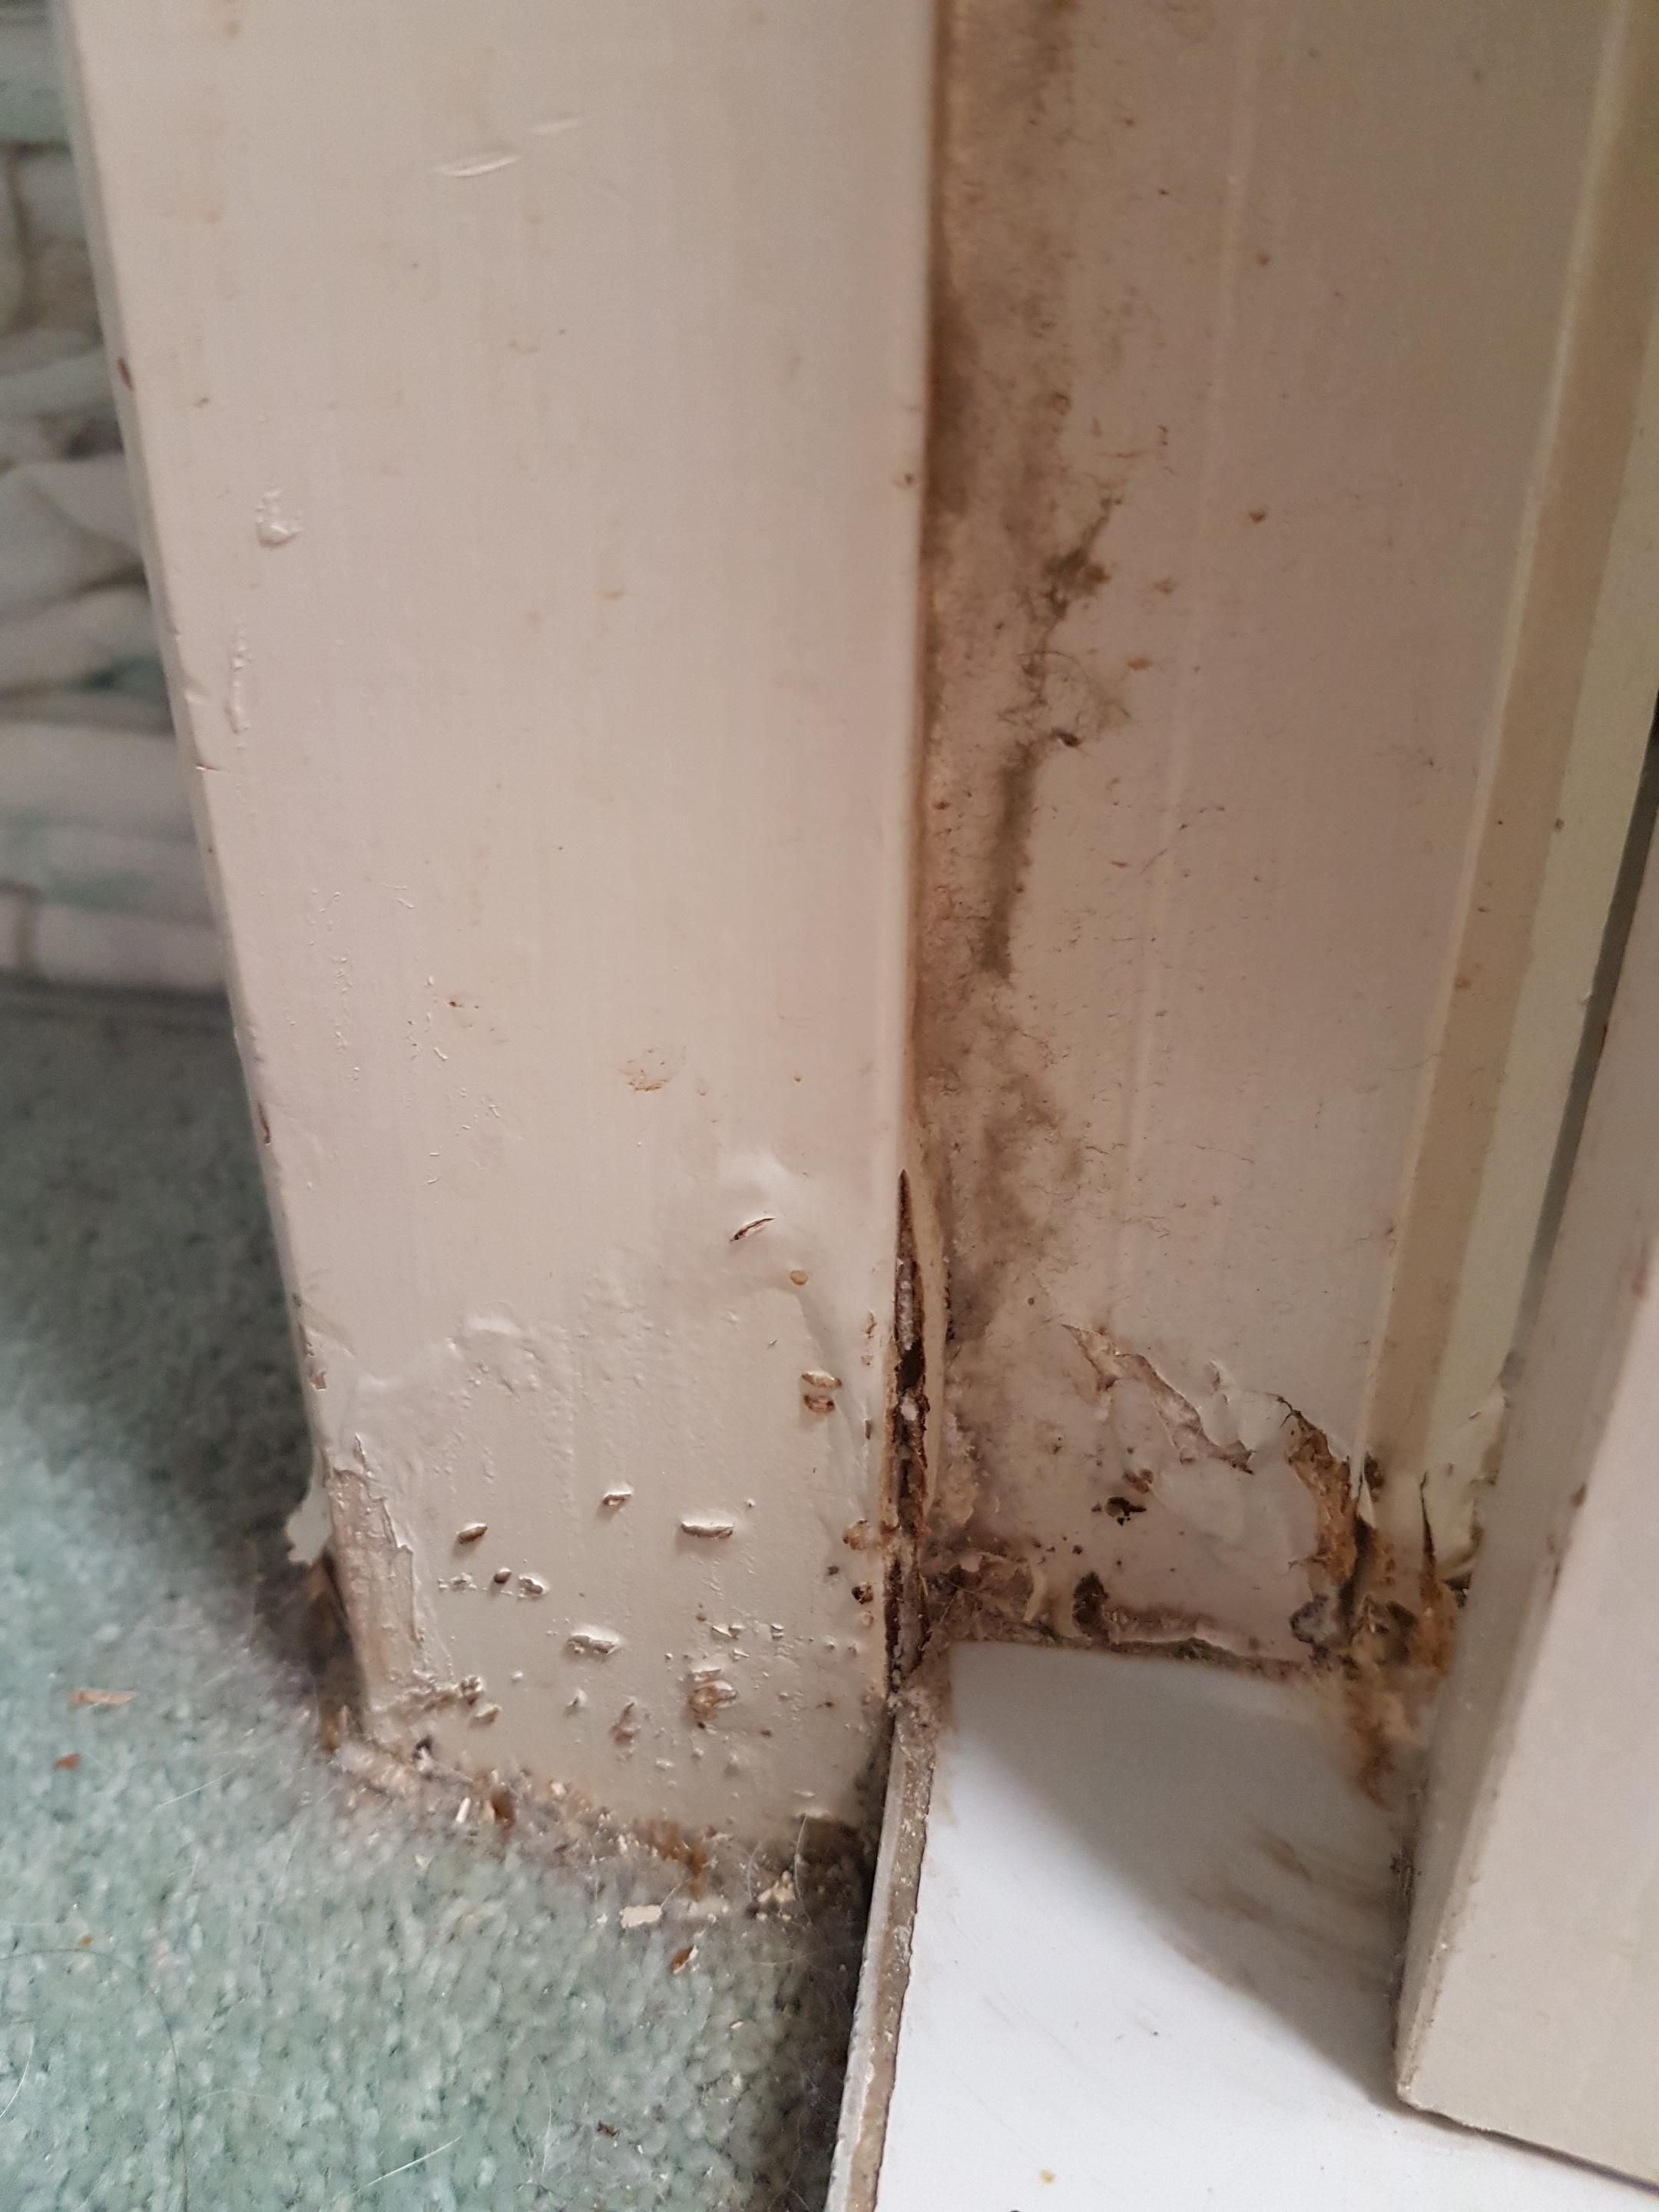 Need Advice On Some Wood Damage Of A Bathroom Door Frame Is It